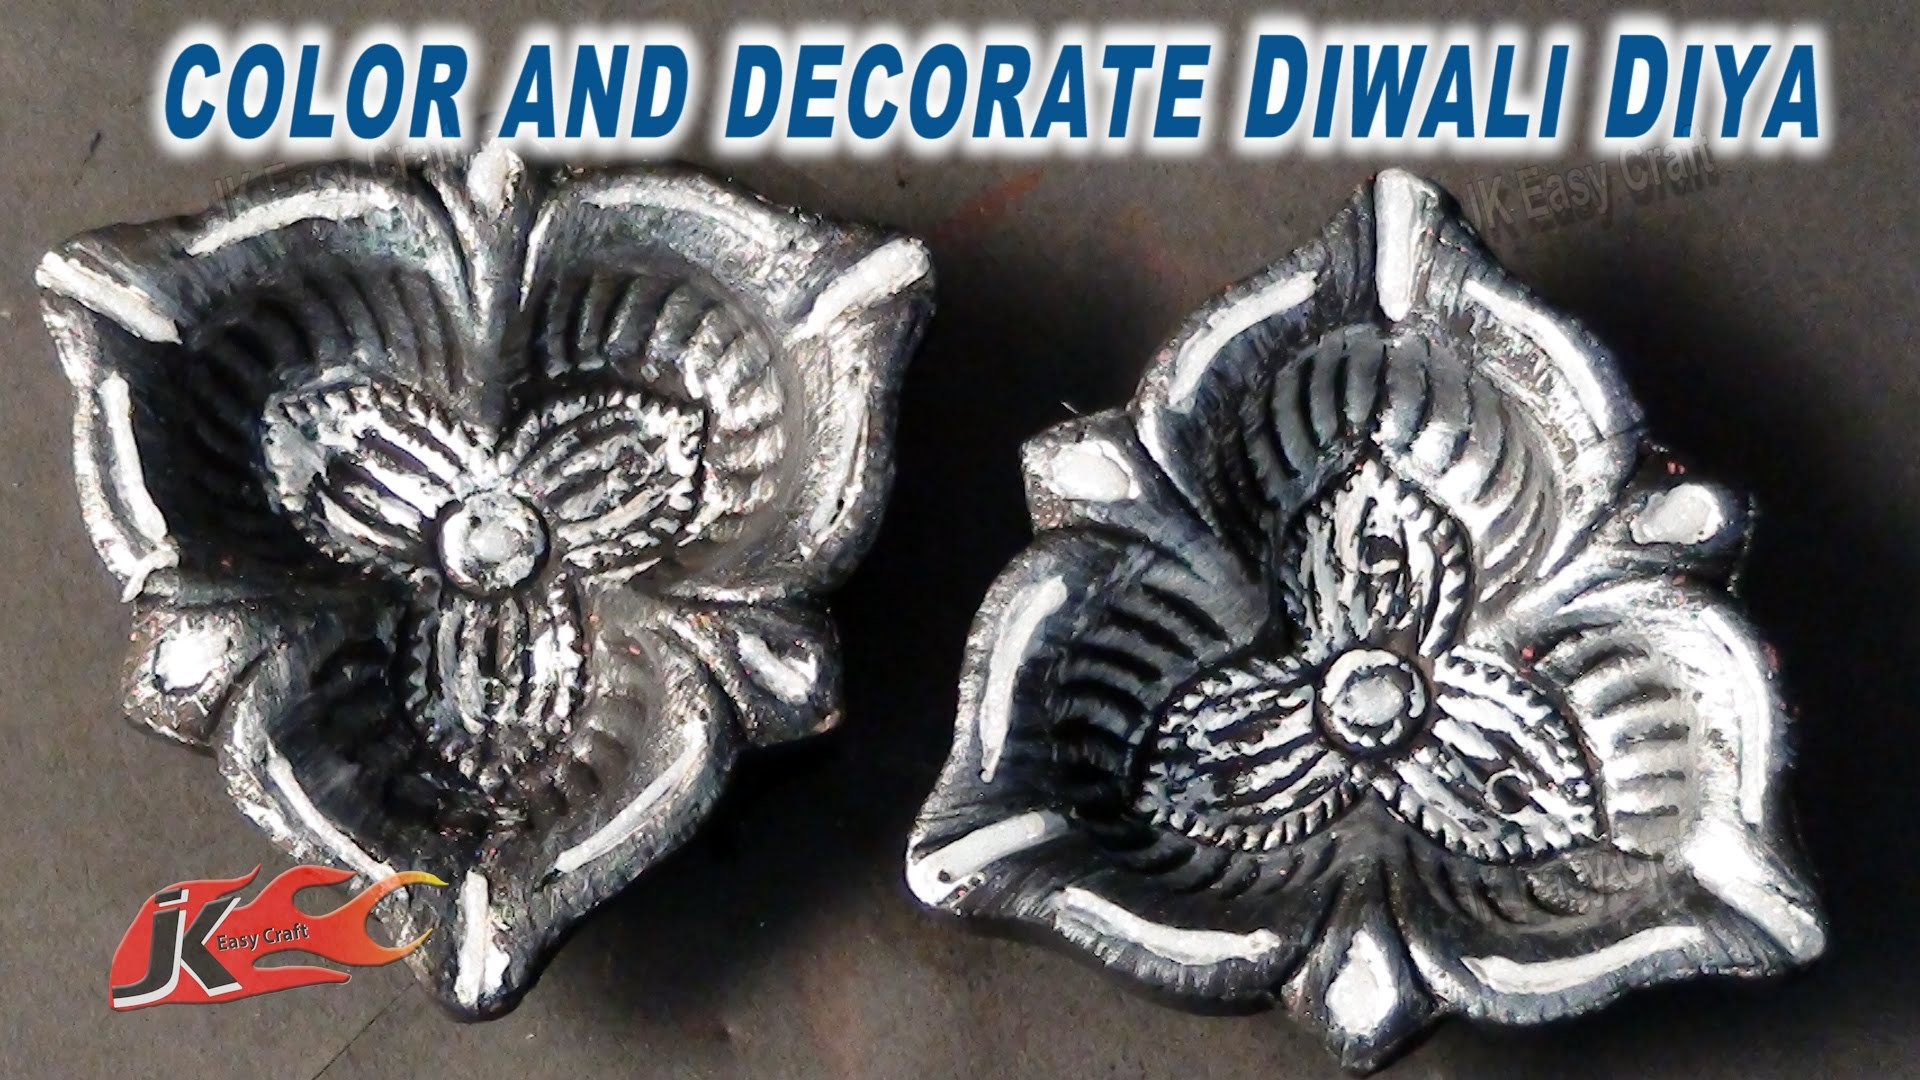 DIY Diwali Diya Decoration|How to color and decorate |JK Easy Craft 056